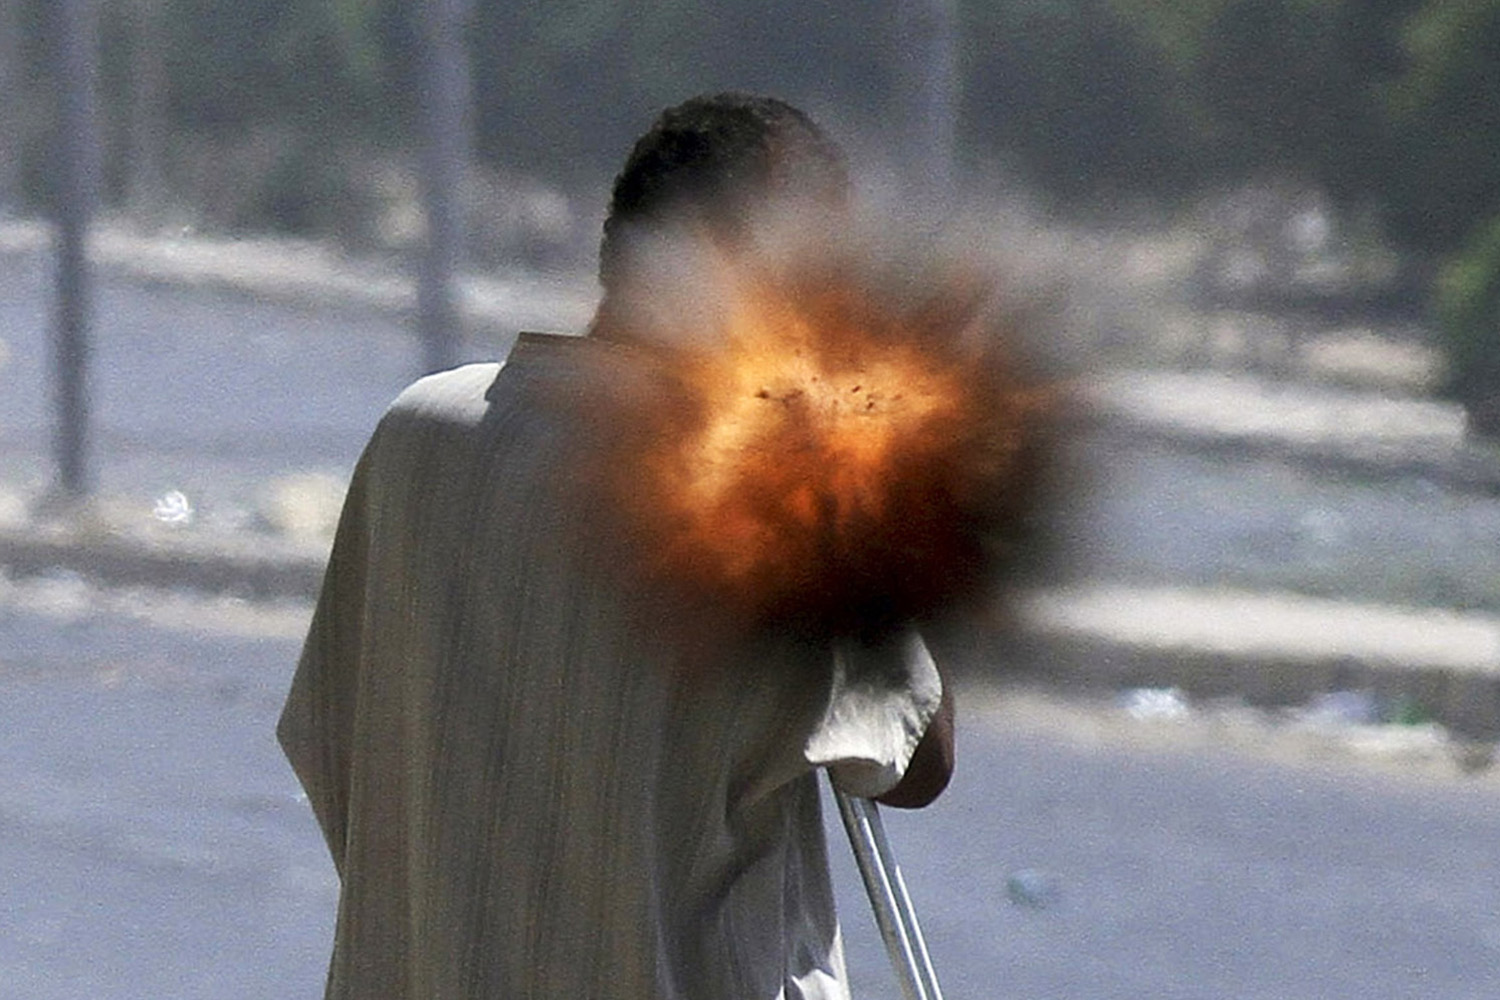 September 24, 2011. A rebel on crutches fires a rocket propelled grenade while fighting on the front line in Sirte.